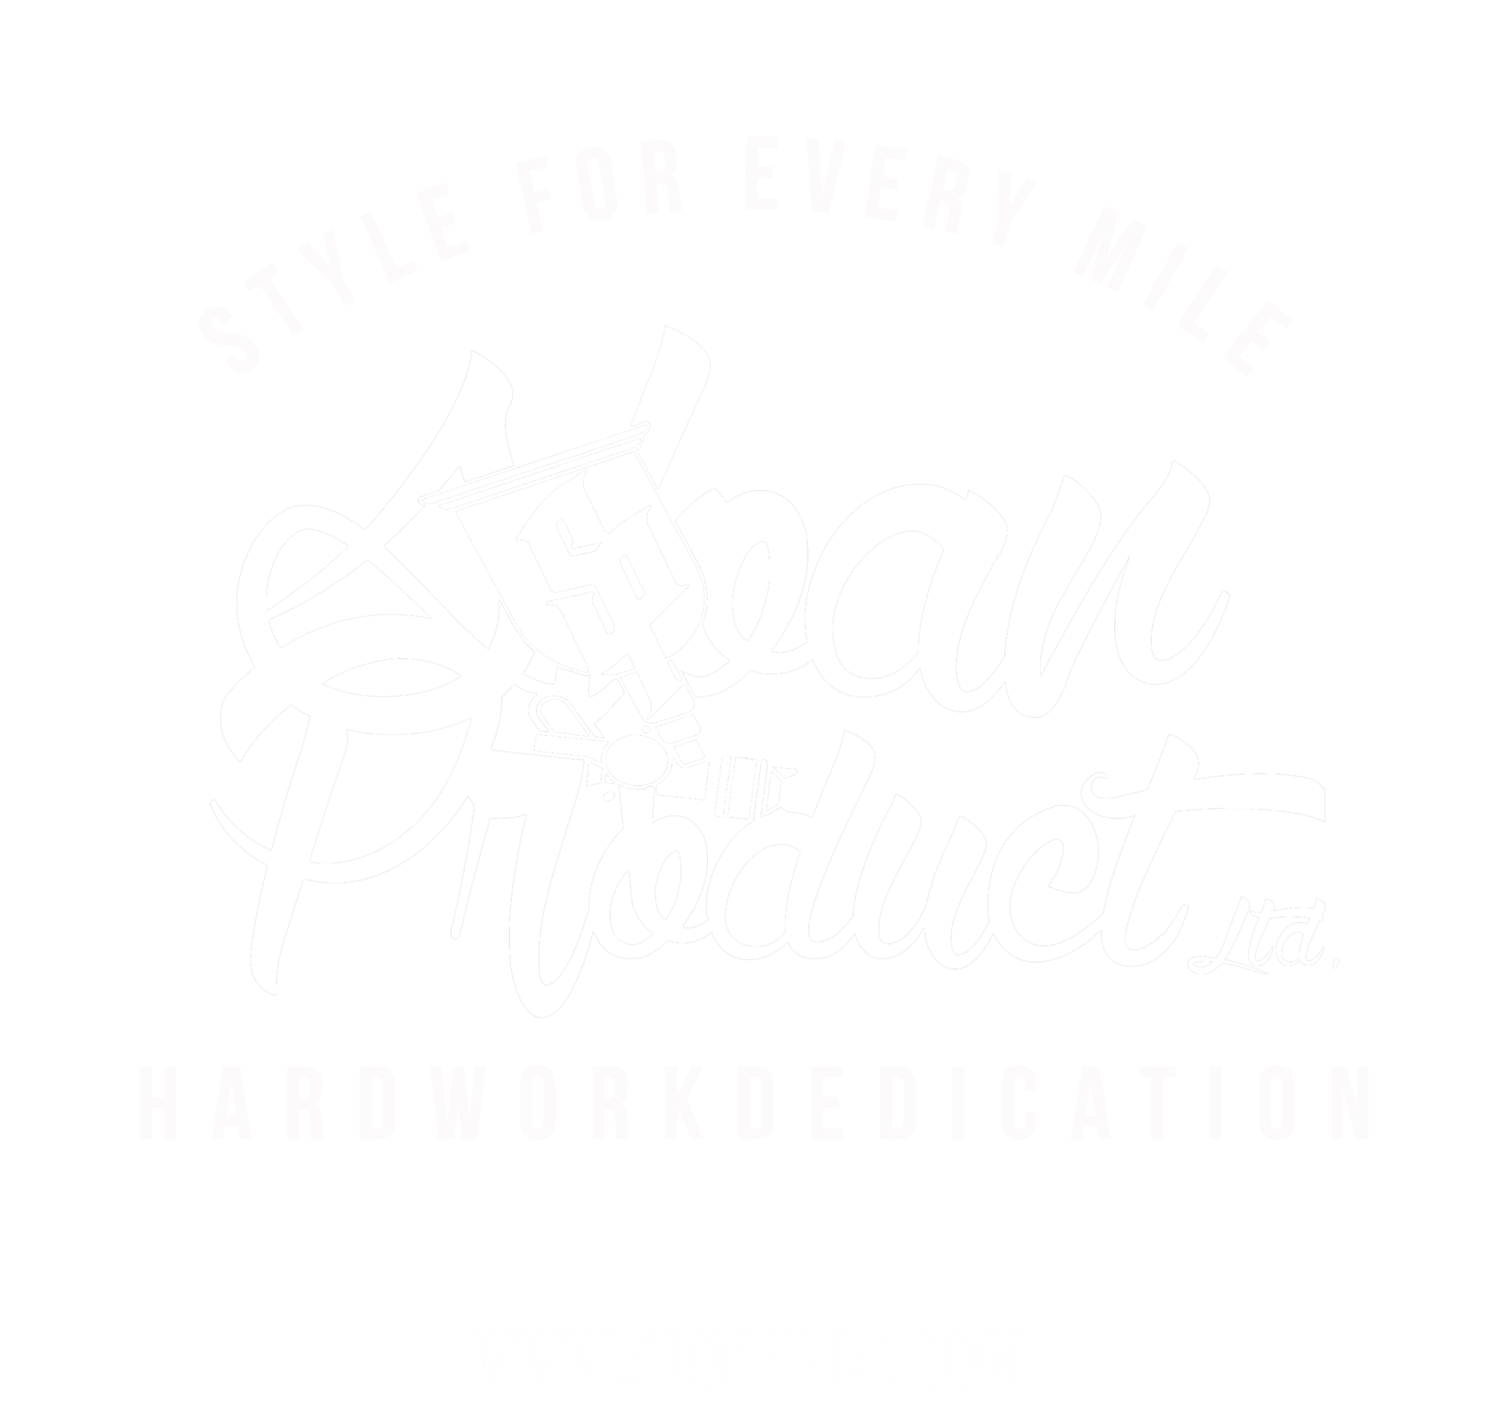 Sloan Product (Style for Every Mile)